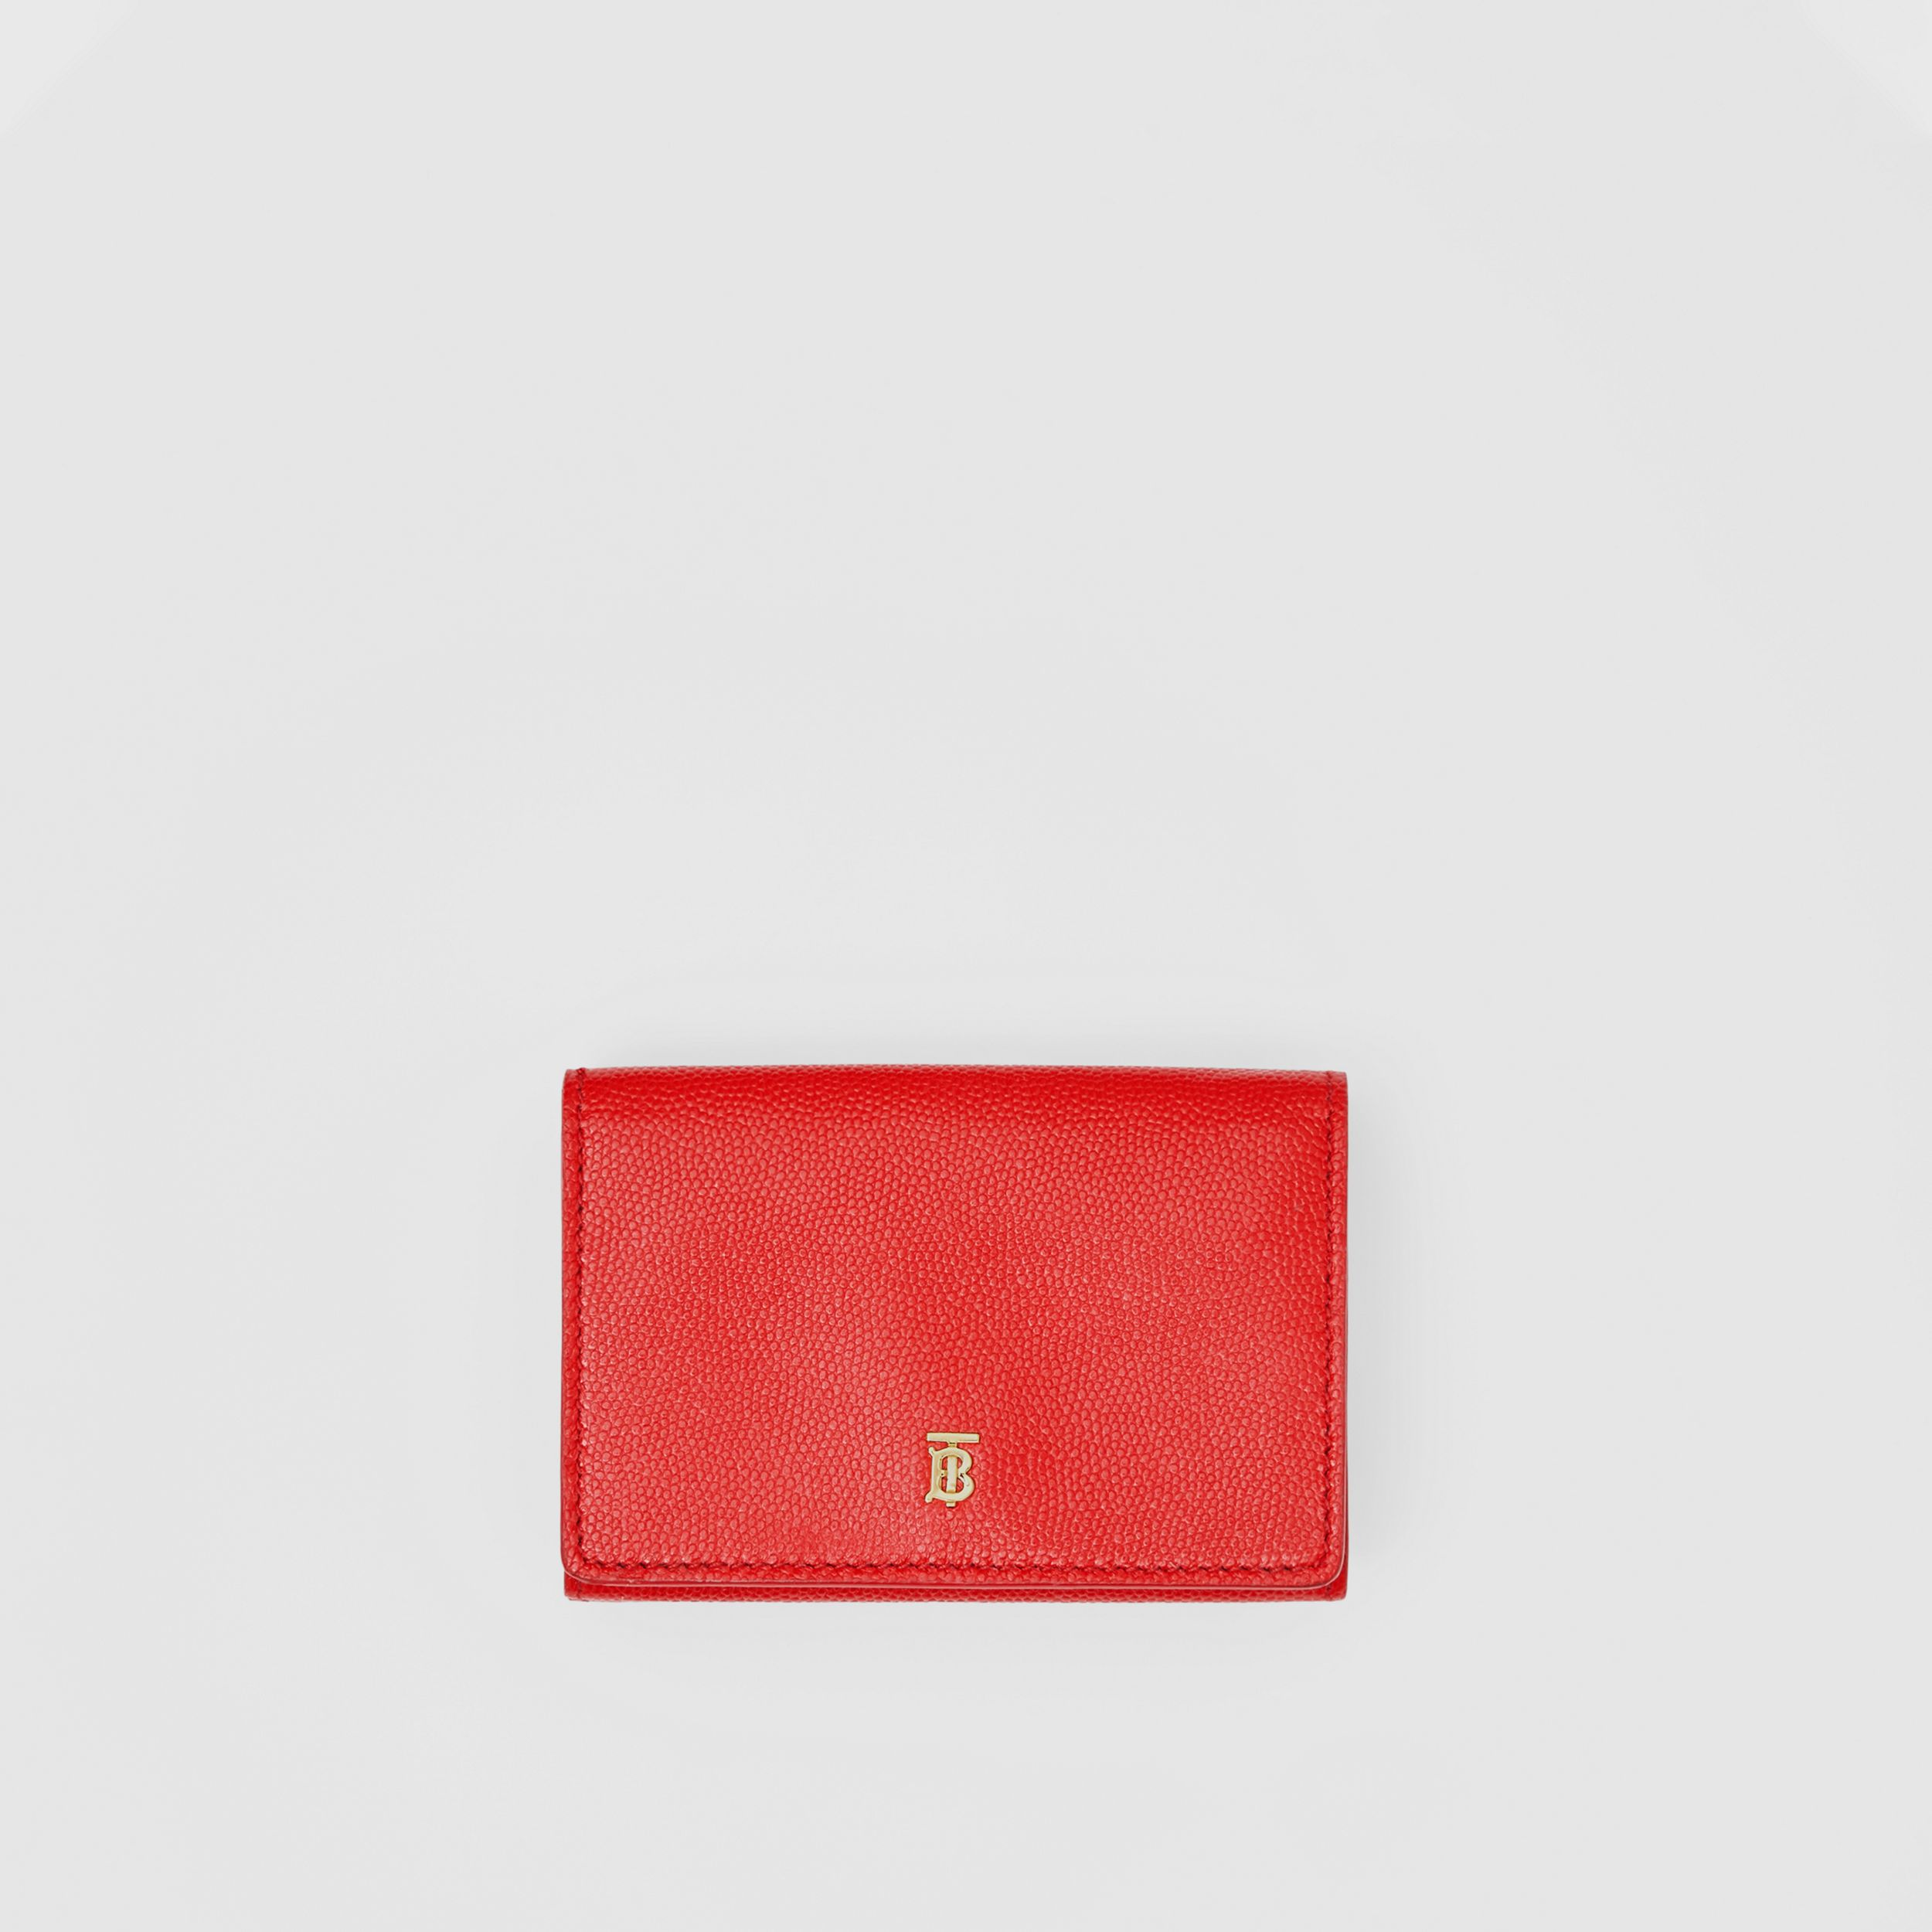 Small Grainy Leather Folding Wallet in Bright Red - Women | Burberry - 1